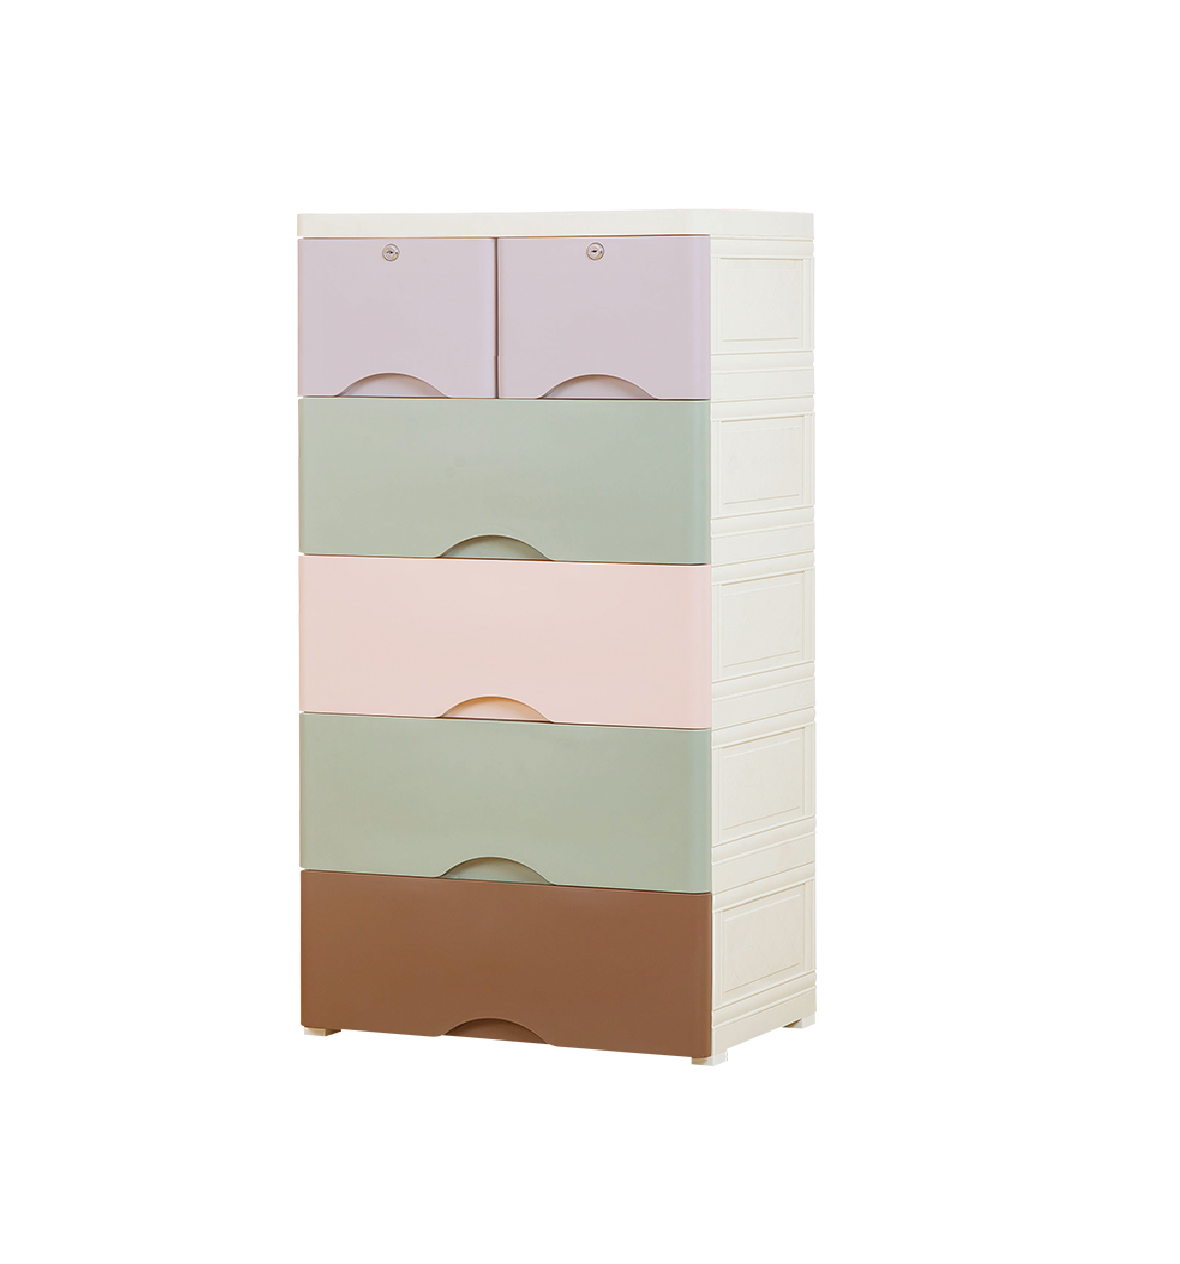 Multi Color Cabinet /Organizer/Storage Bedroom Baby Nursery DIY 6 Drawers With Lock 58 L 40 D 116 H CMS